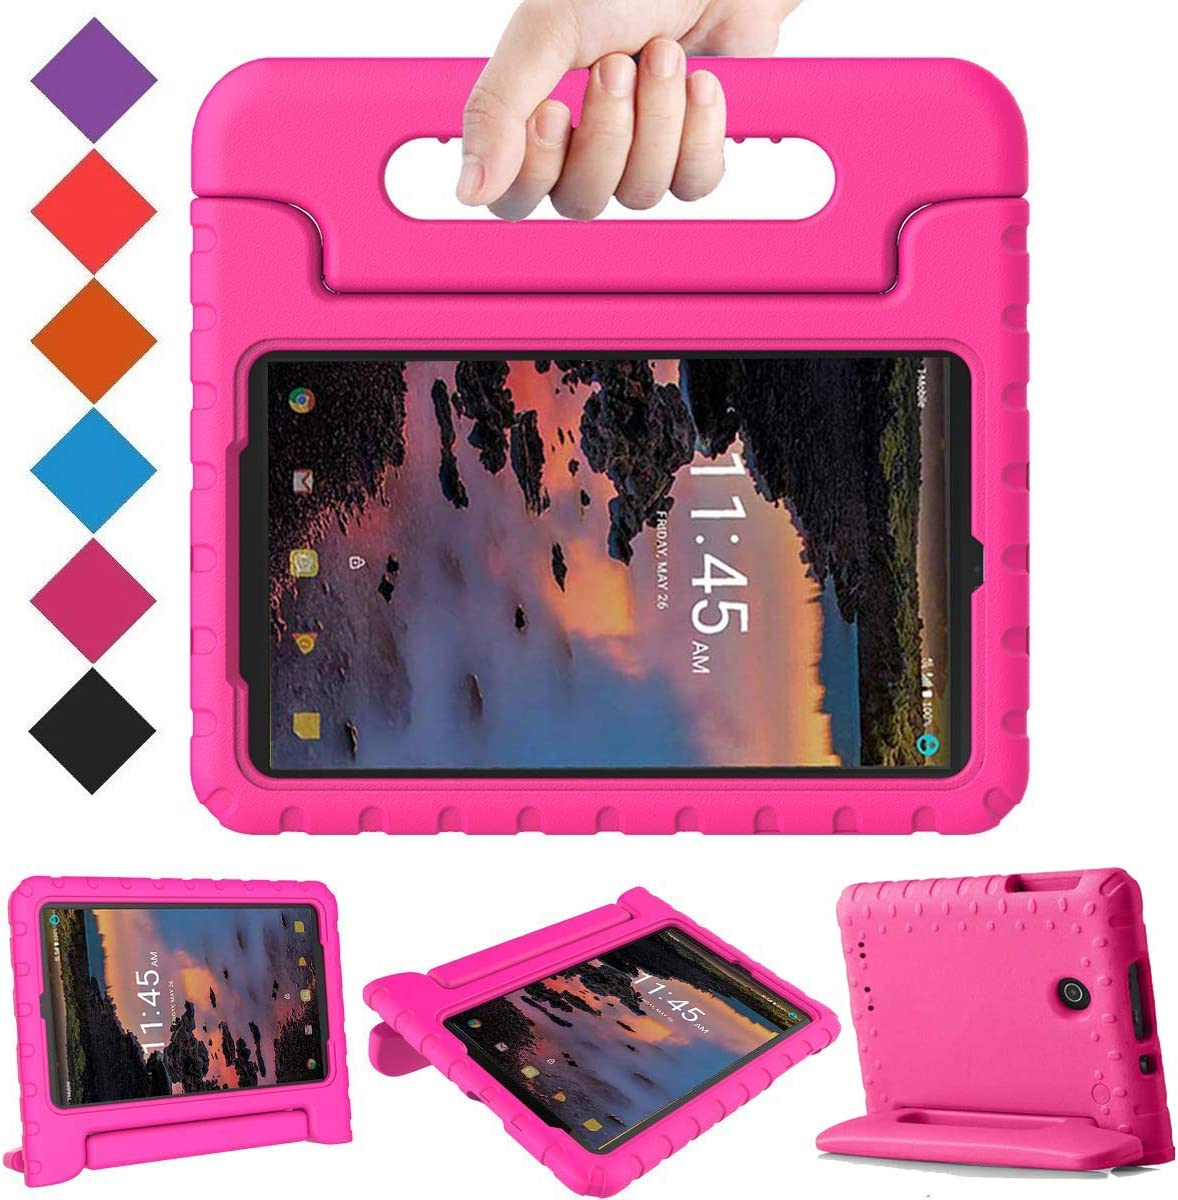 BMOUO Kids Case for Alcatel Joy Tab 8/3T 8 Tablet 2018/Alcatel A30 Tablet 8 2017, Lightweight Kid-Proof Handle Stand Case for Alcatel Joy Tab 2019/ Alcatel 3T 2018/ Alcatel A30 2017 8 - Rose